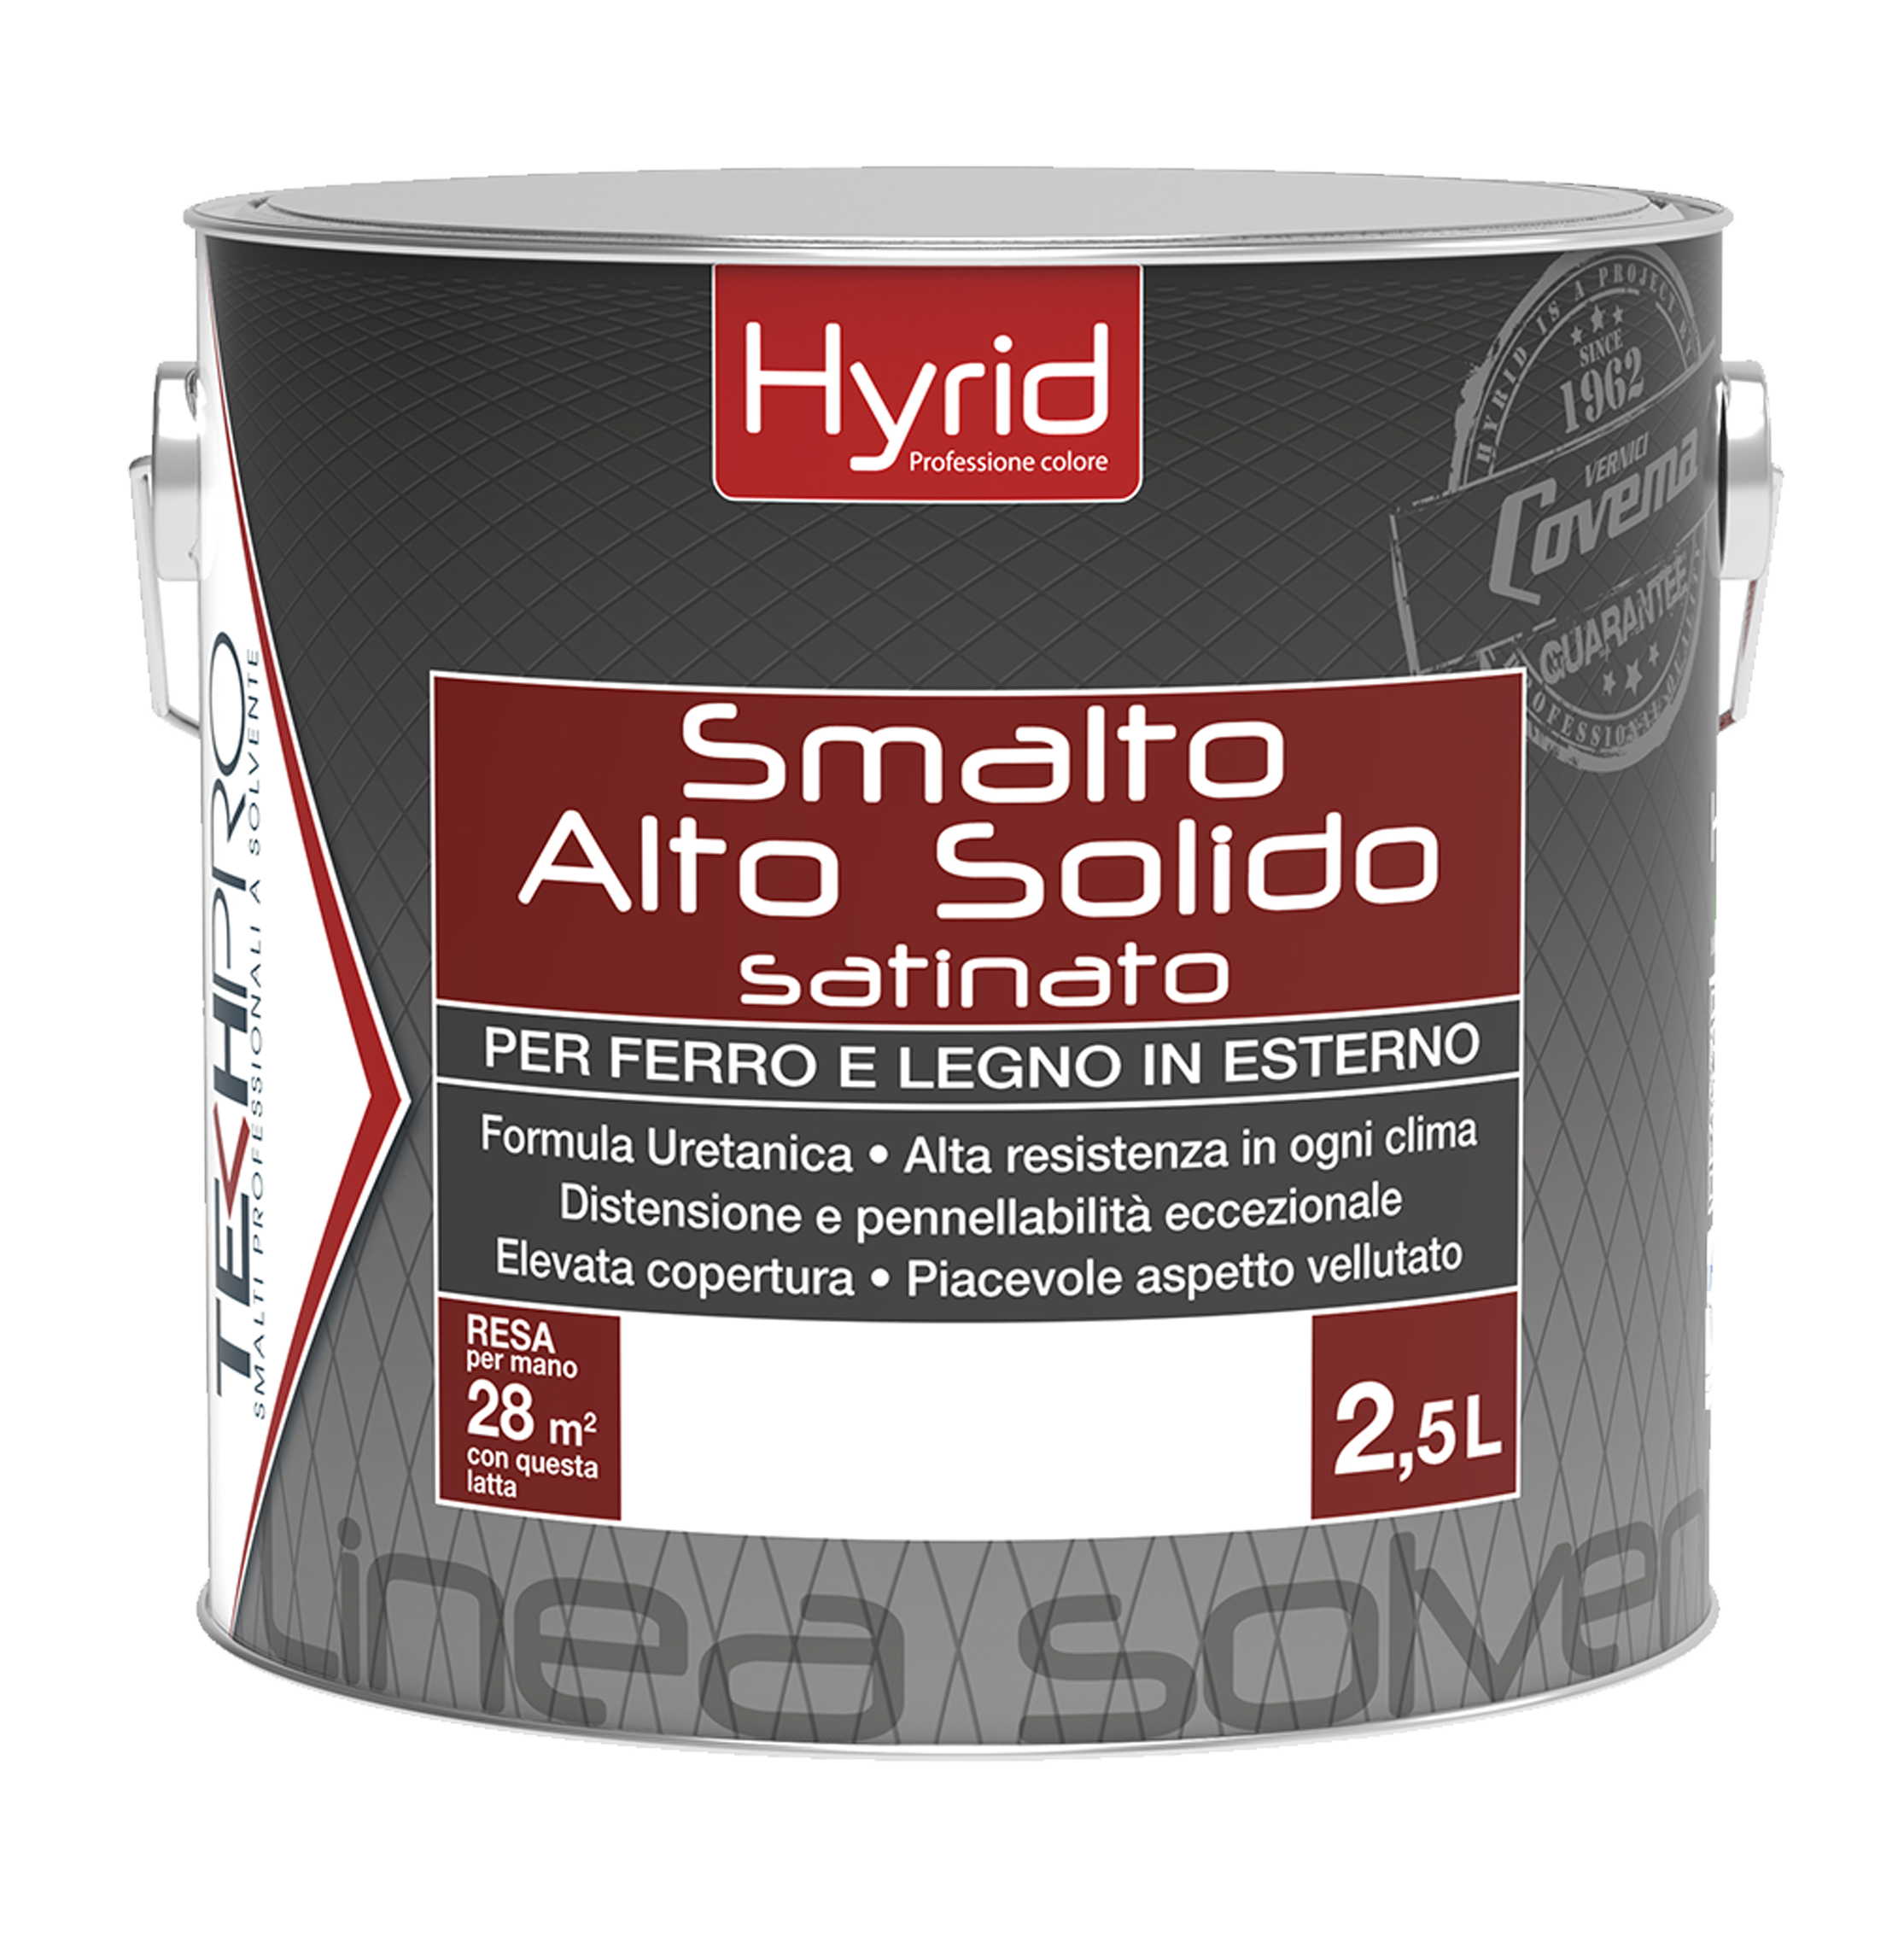 Hyrid Smalto Alto Solido Satinato